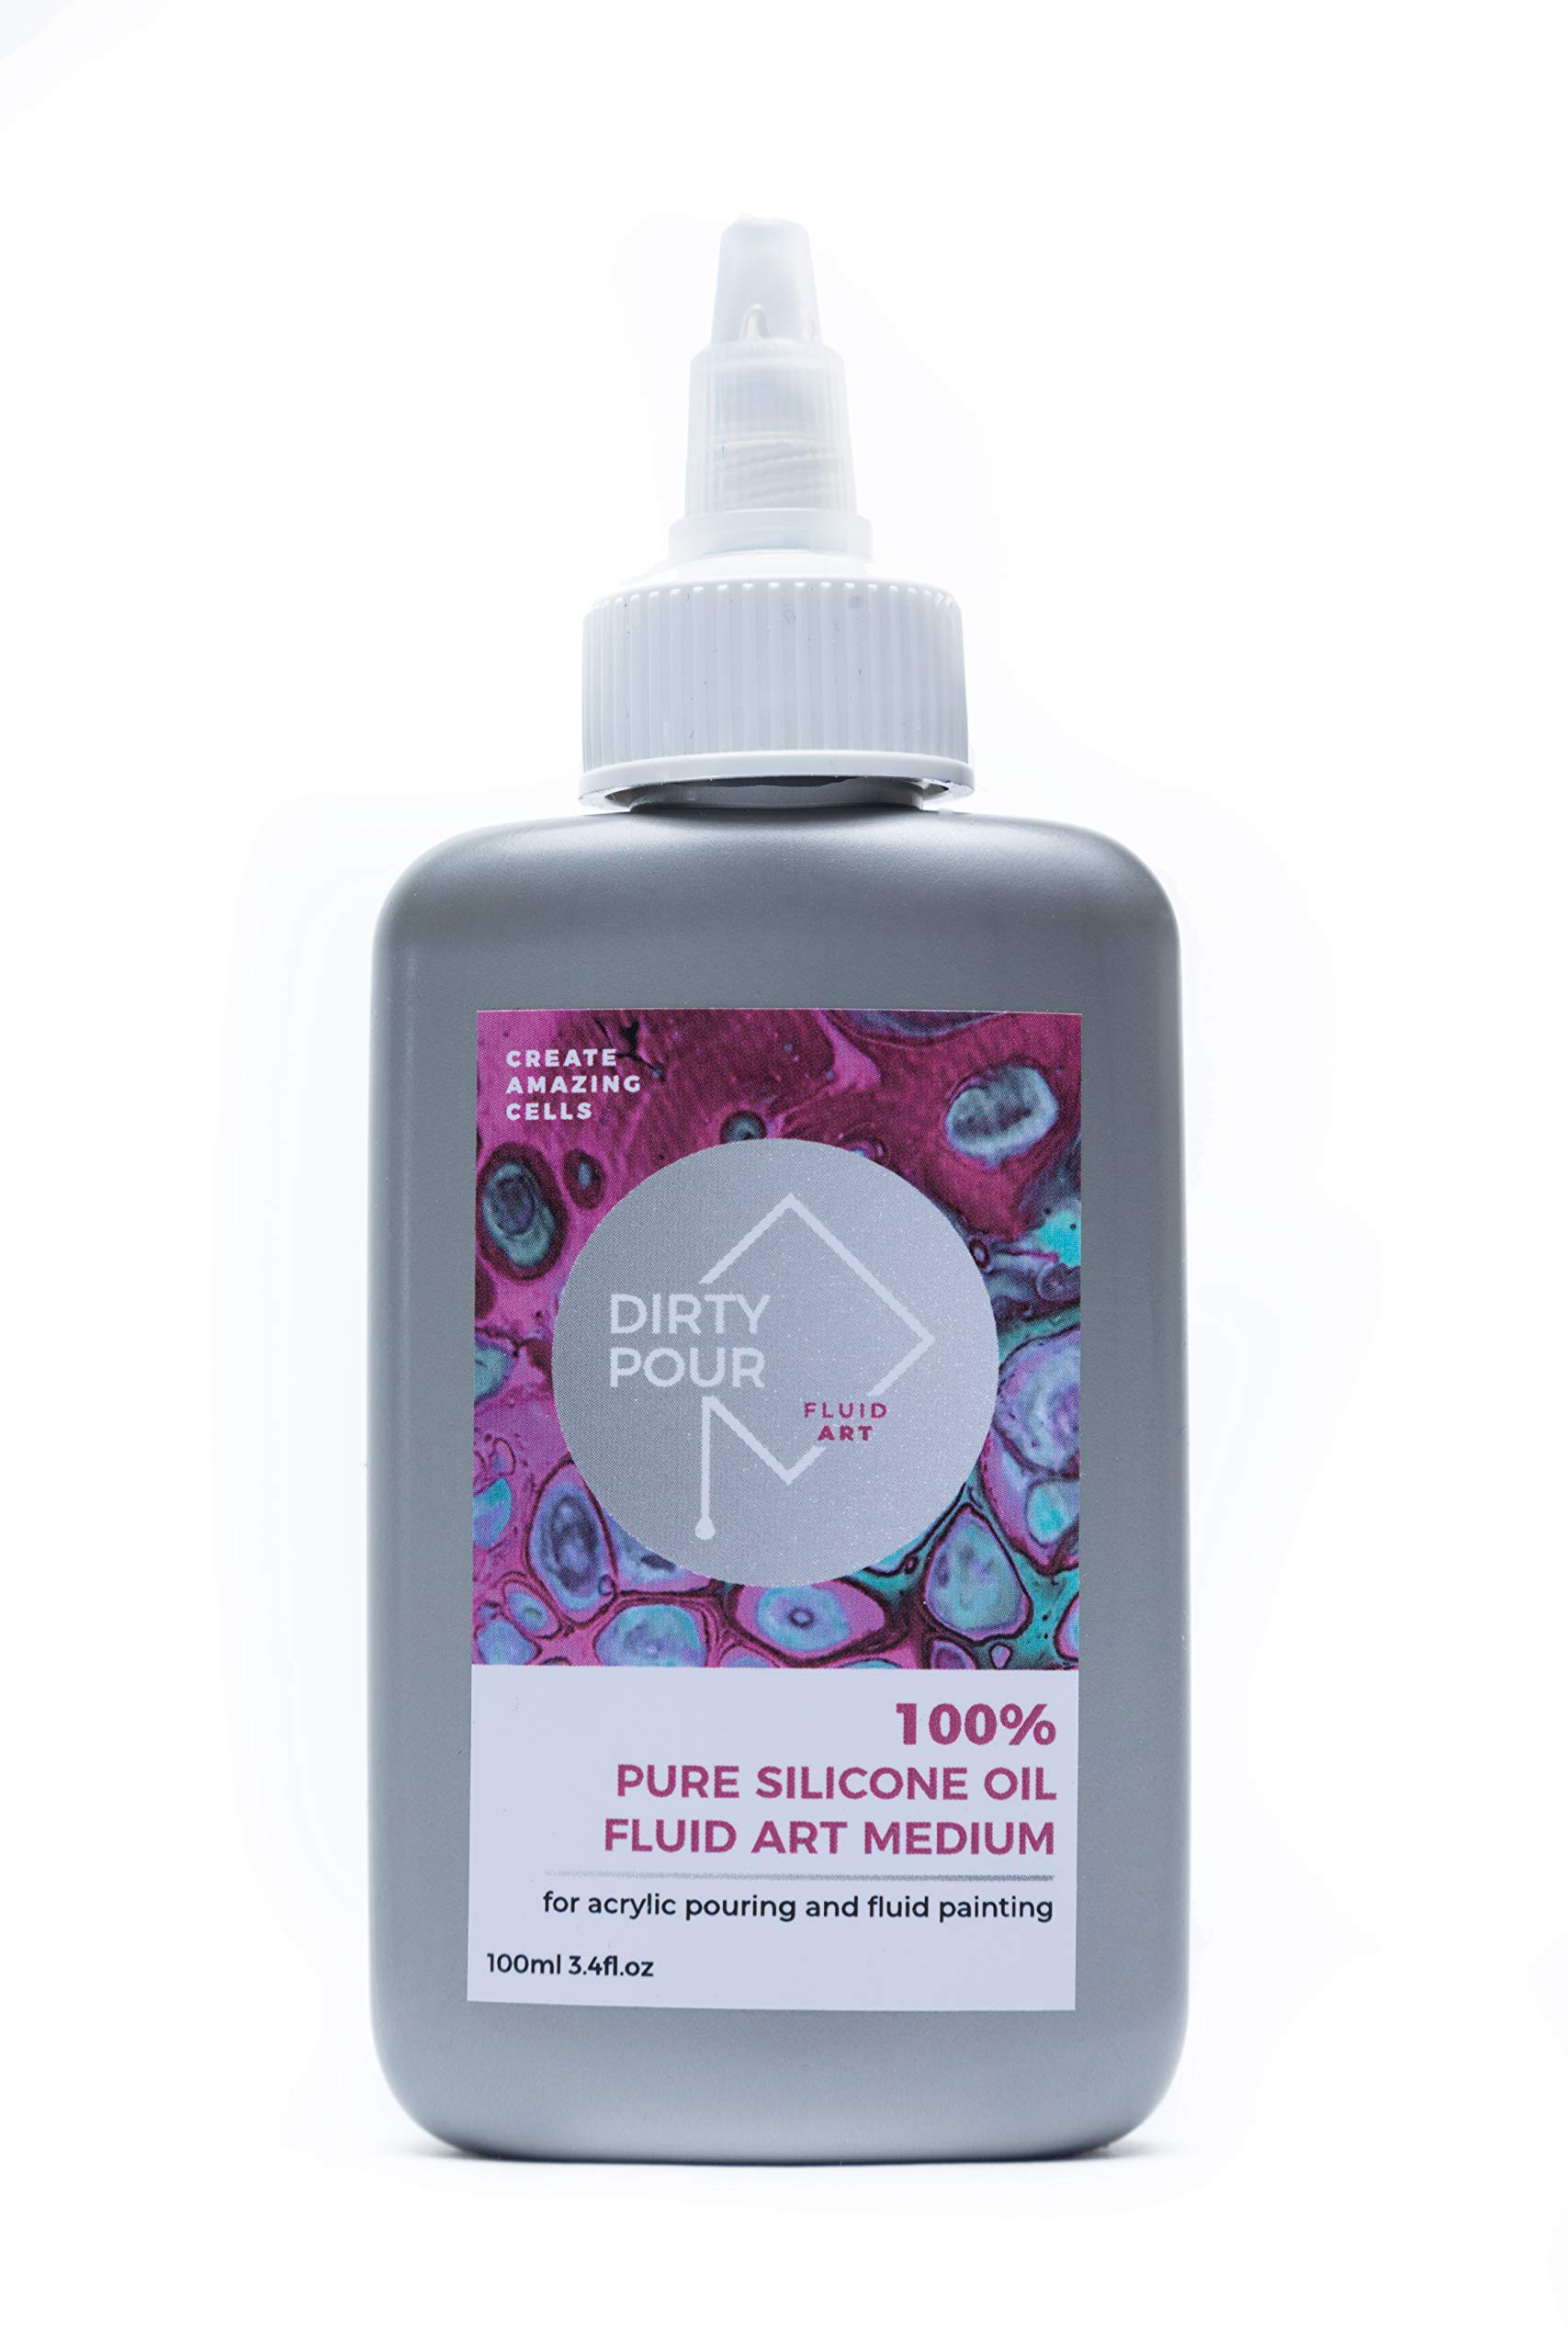 100% Pure Silicone Oil Fluid Art Medium | Acrylic Flow and Pouring Paint |Create Amazing Cells | Liquid Silicone| Australian Art Supplies